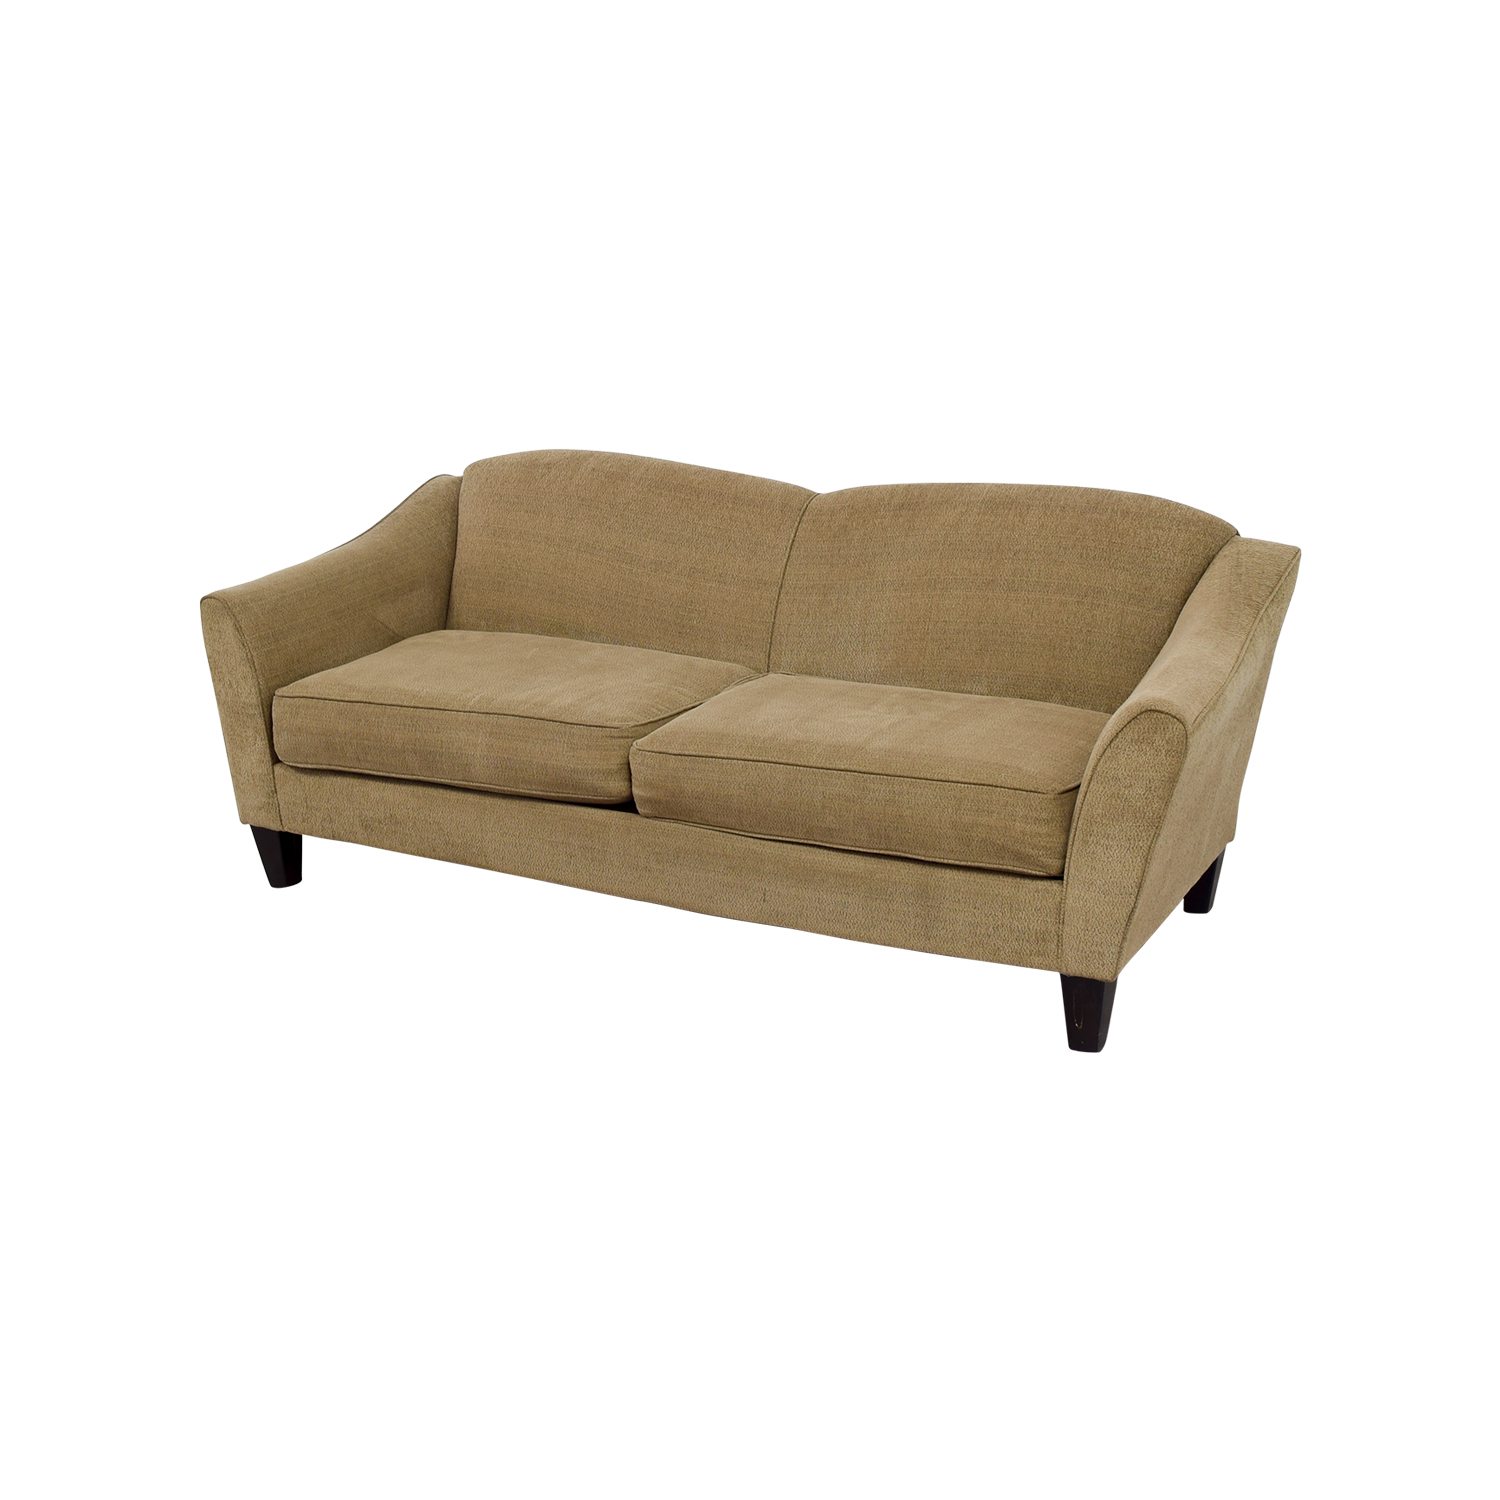 43% OFF Bob s Furniture Bob s Furniture Tessa Beige Sofa Sofas